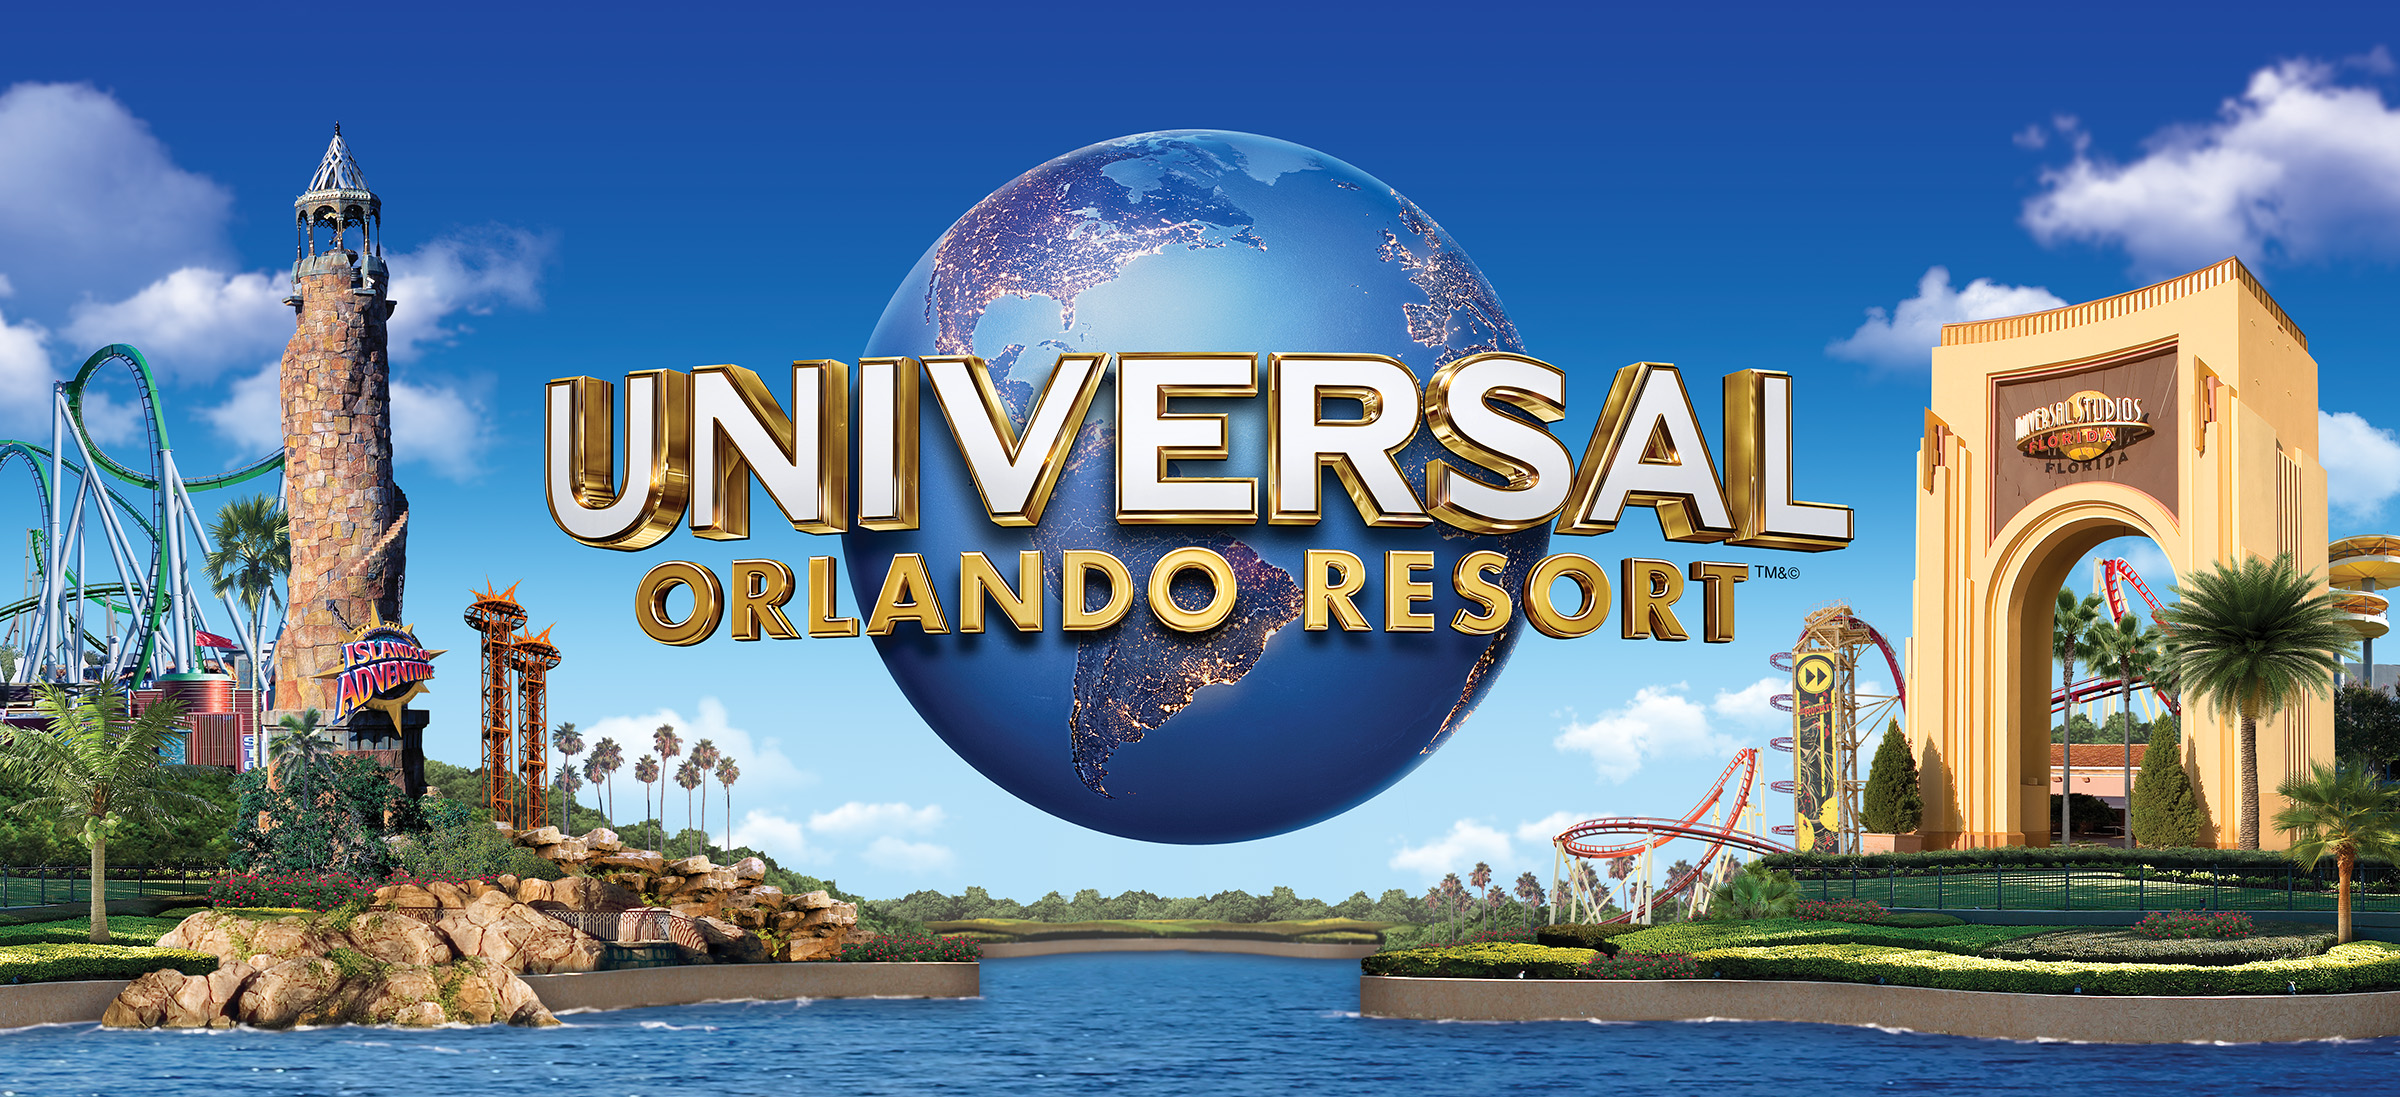 explore universal orlando with the 2 2 offer   kingdom